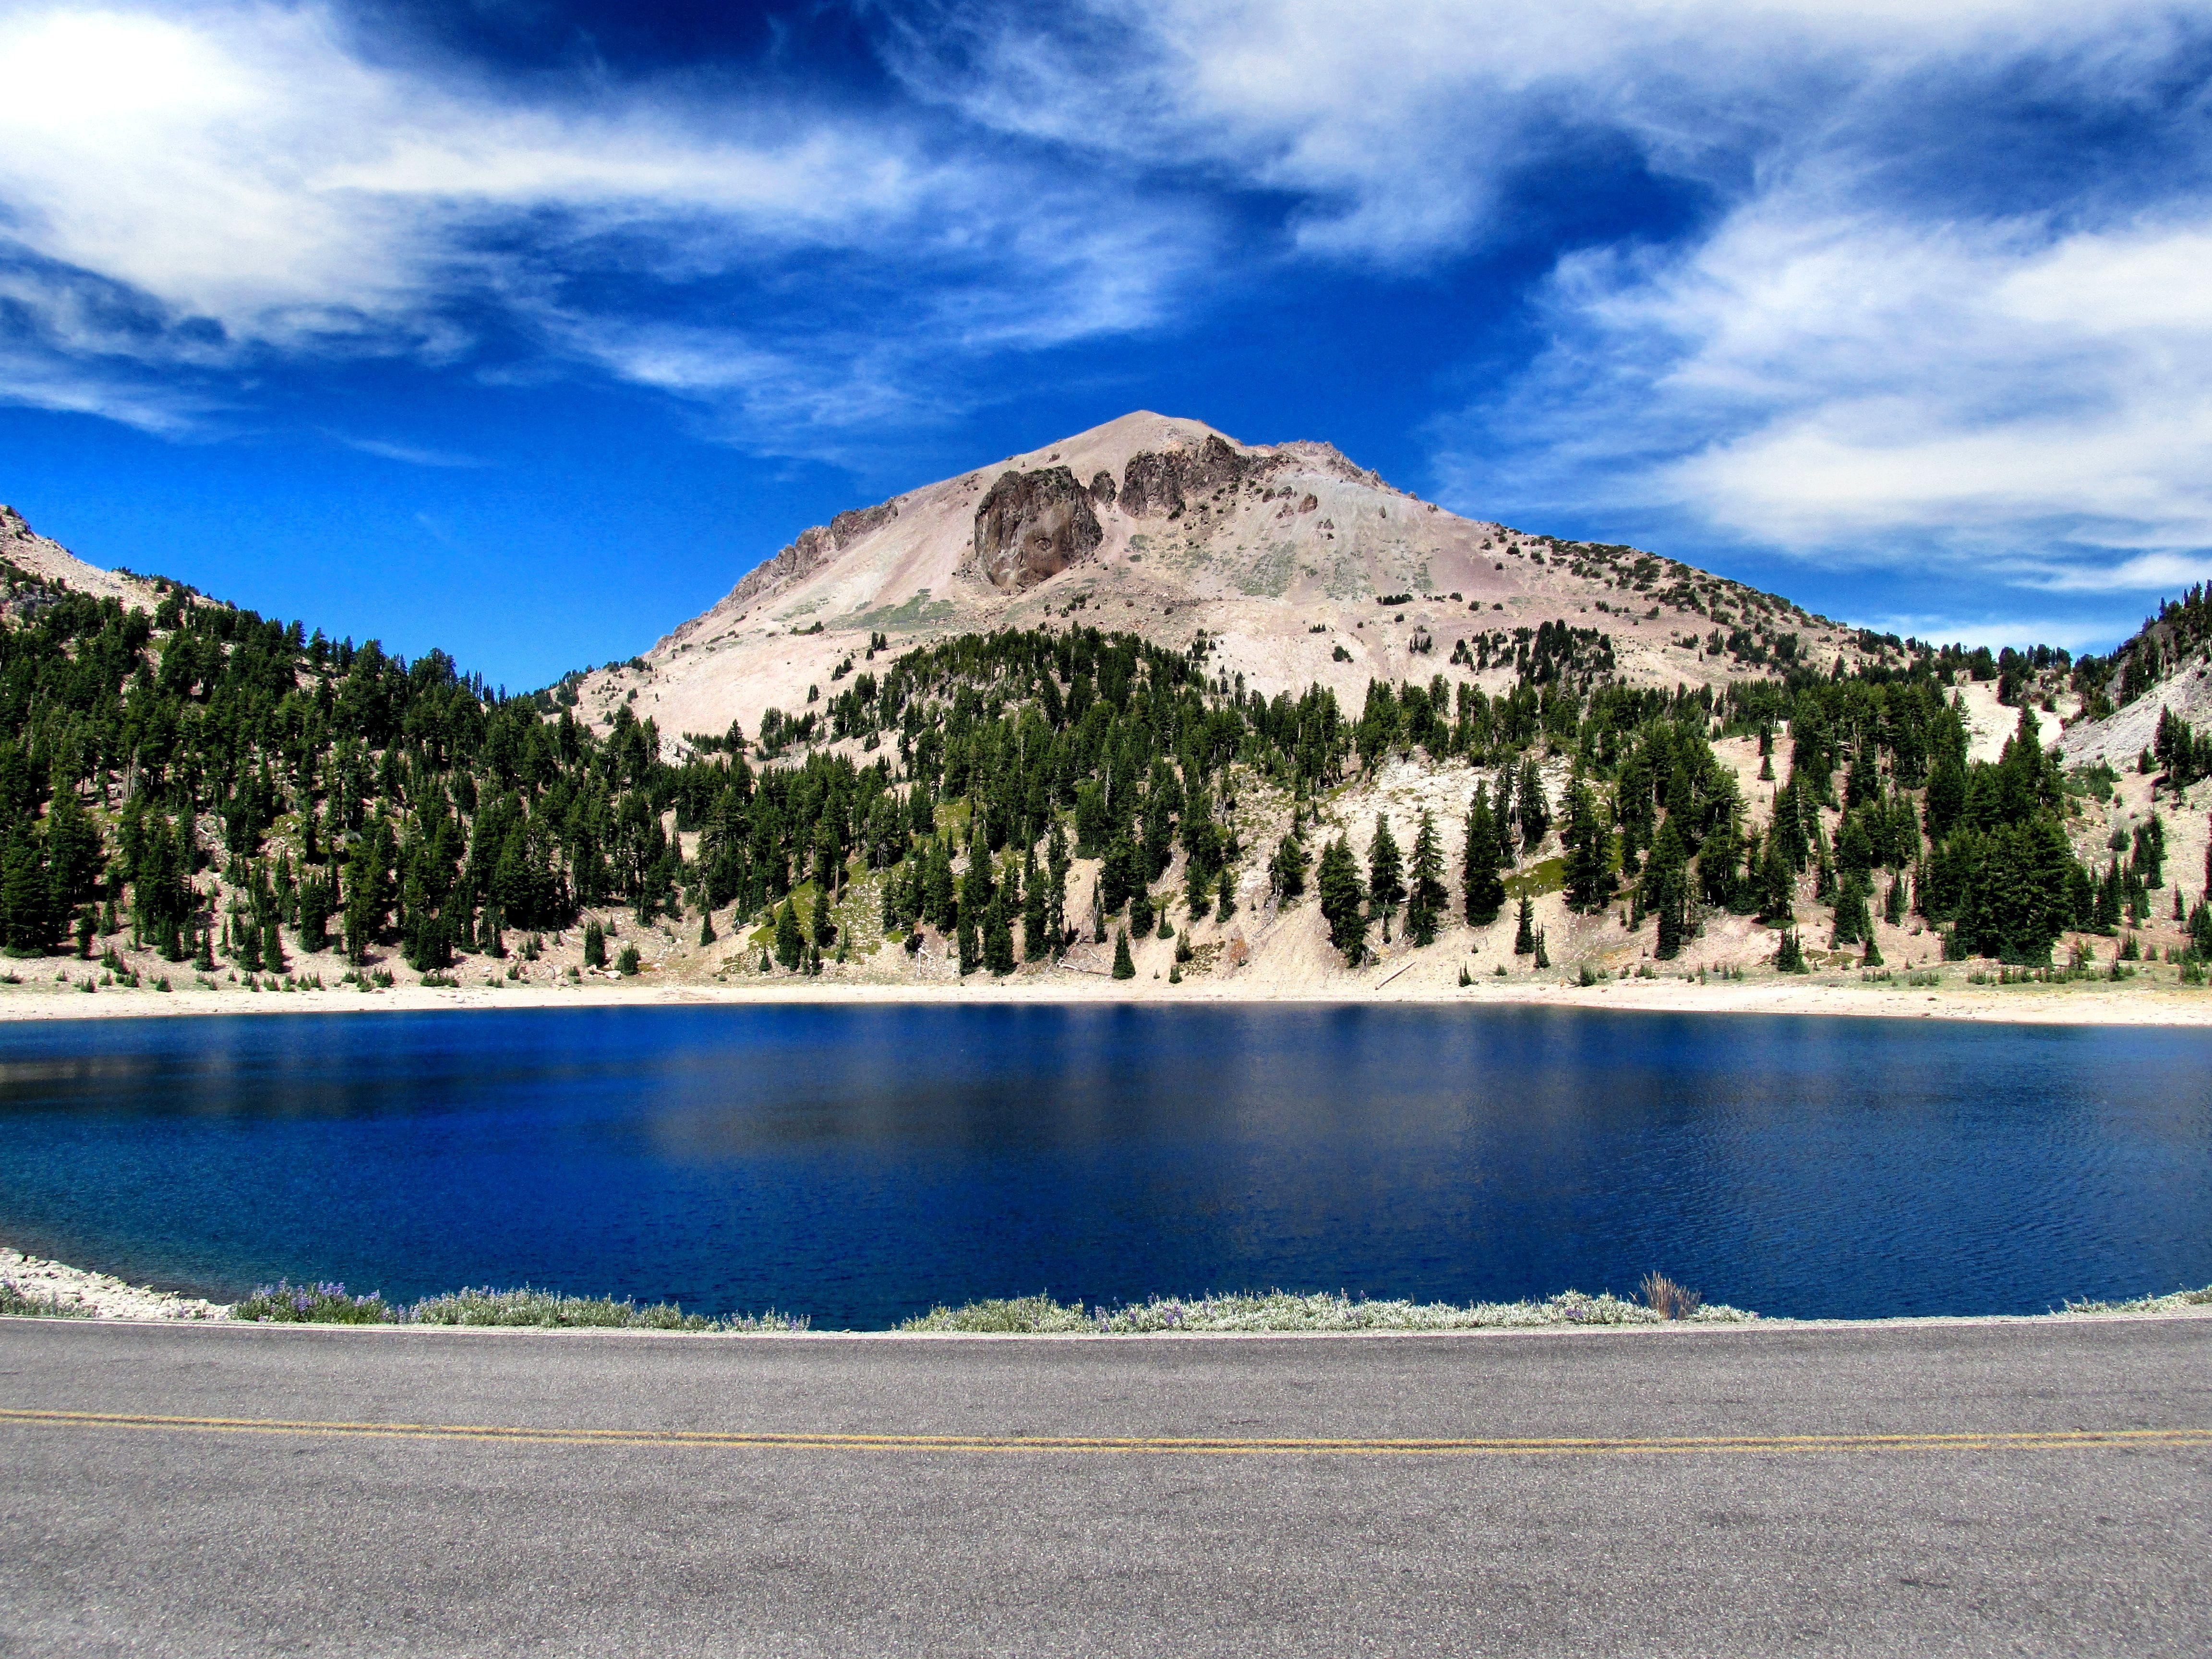 Beauty of Lassen Volcanic National Park - Album on Imgur